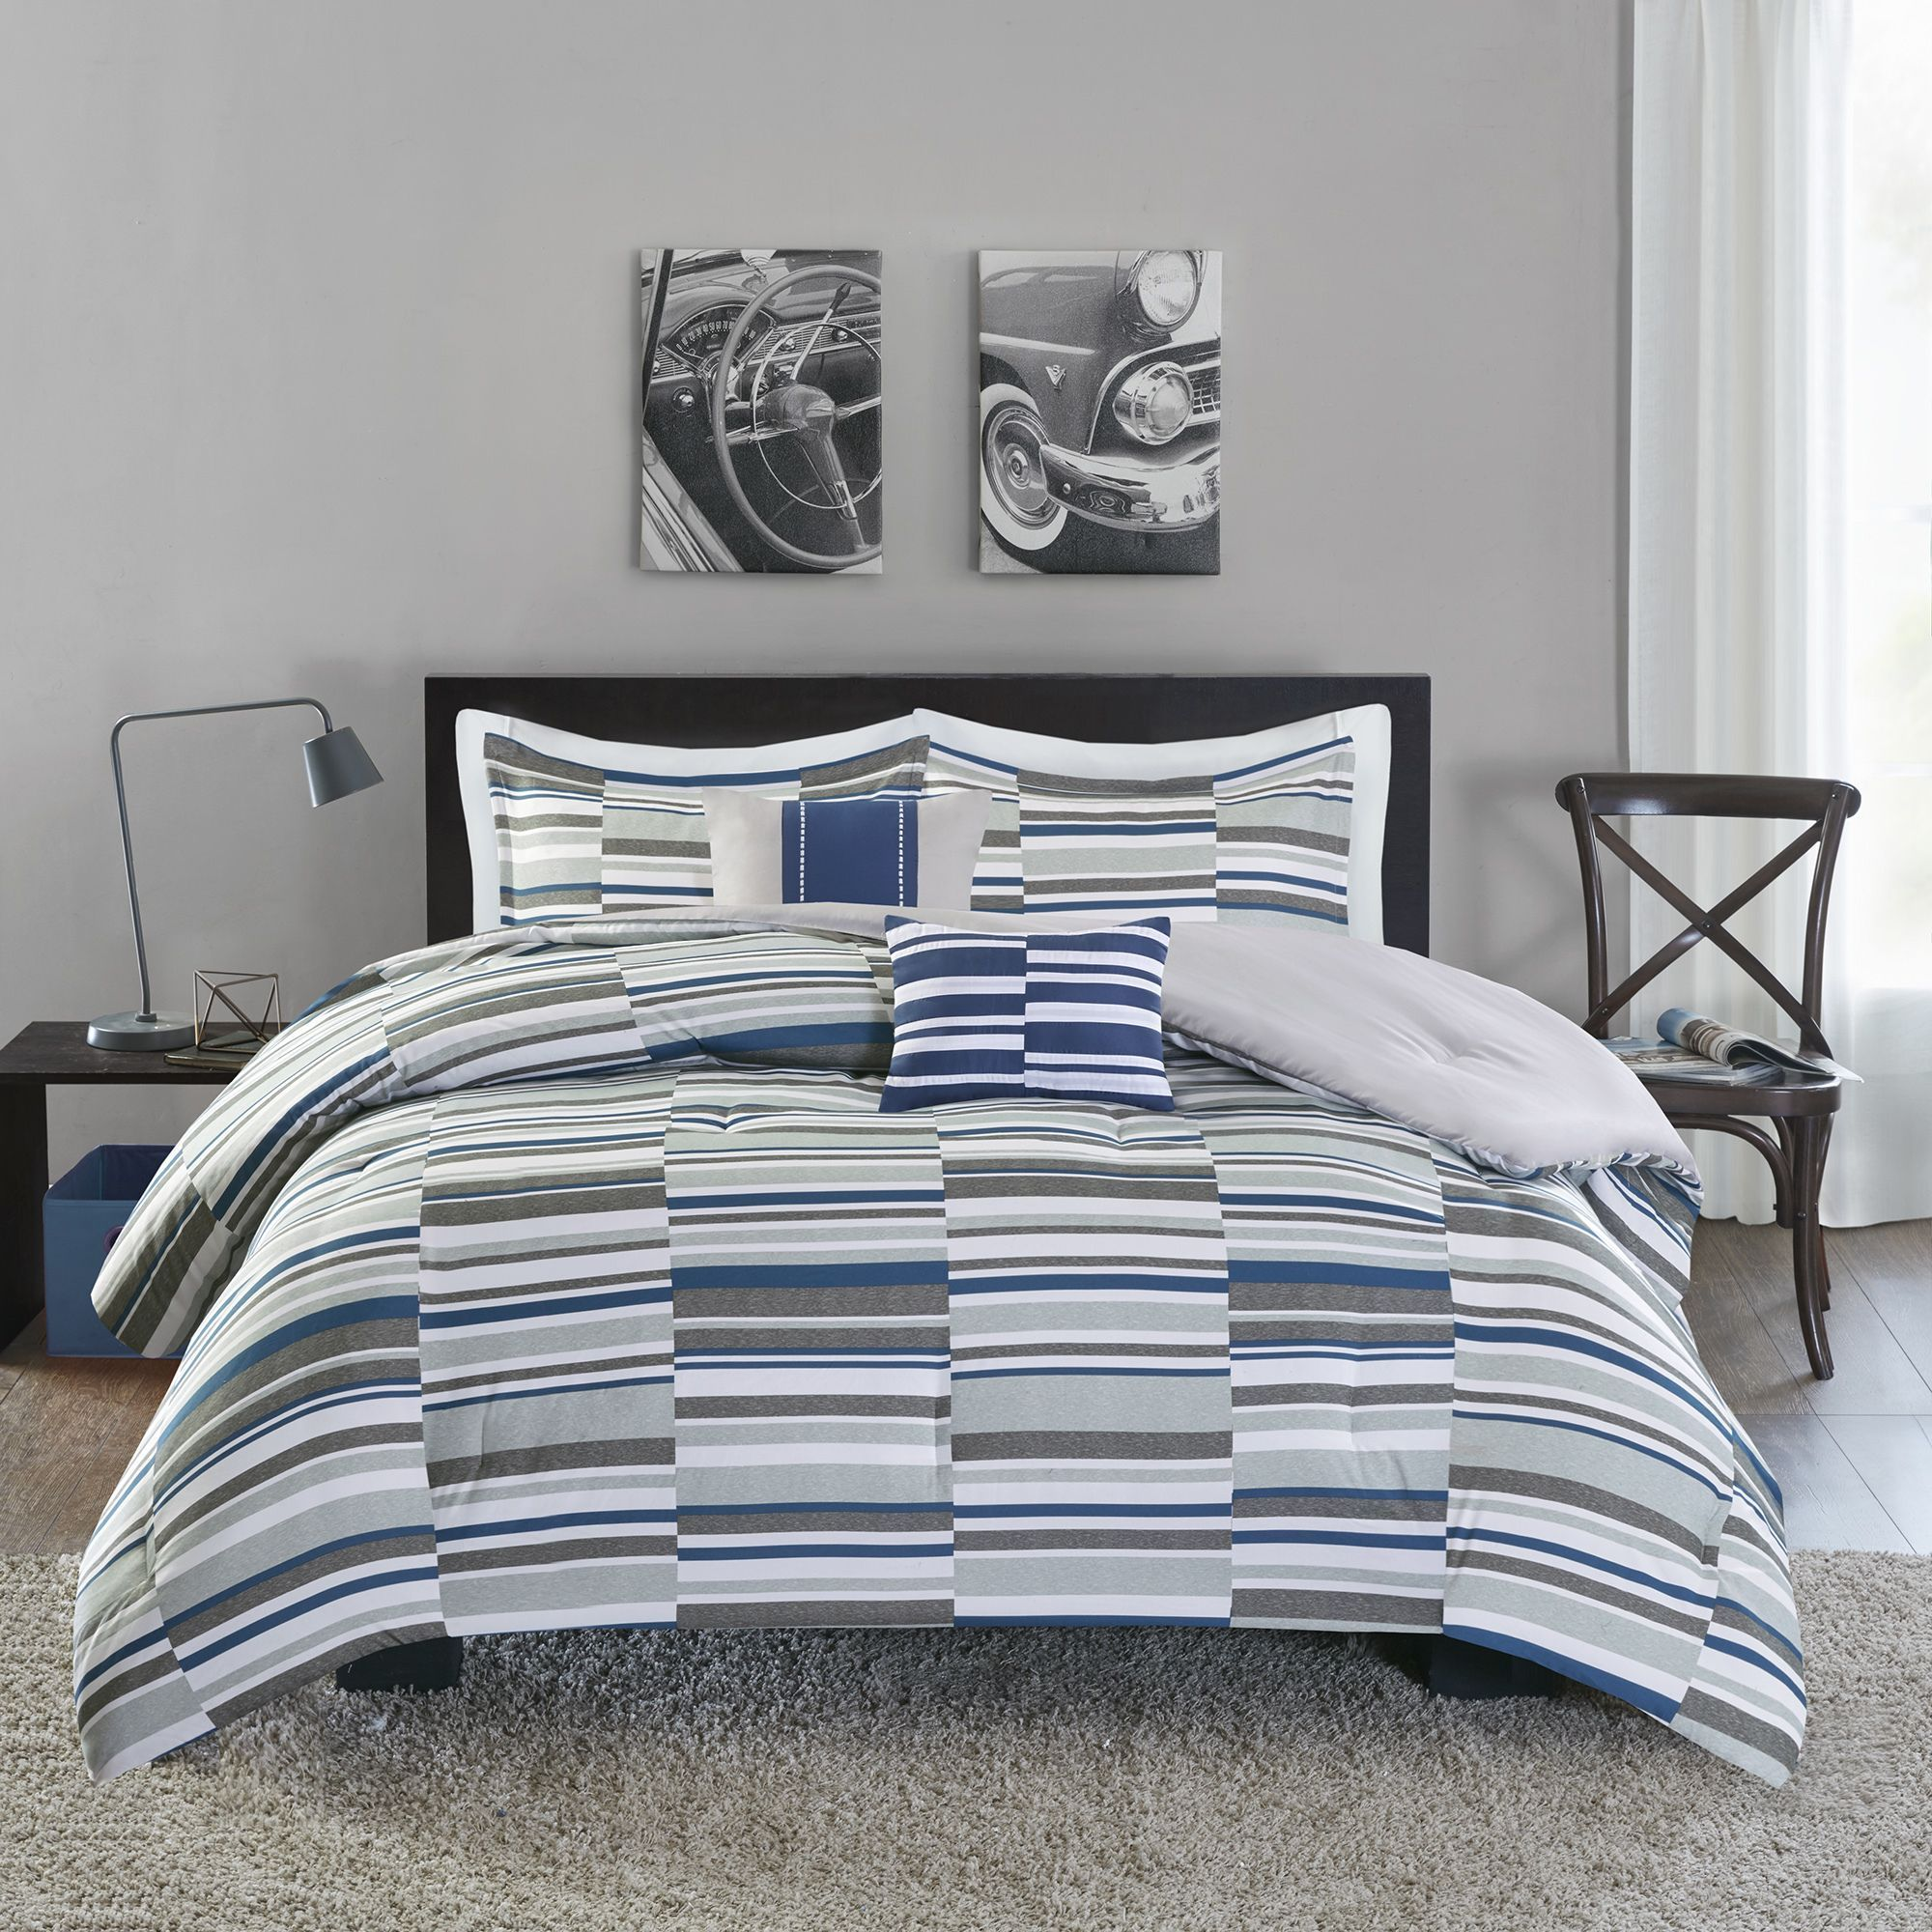 Spuce Up Your Bedroom With The Hip Wyatt Blue Comforter Set A Broken Stripe Pattern Covers This Top Of Bed In Urban Shades And Grey For Modern